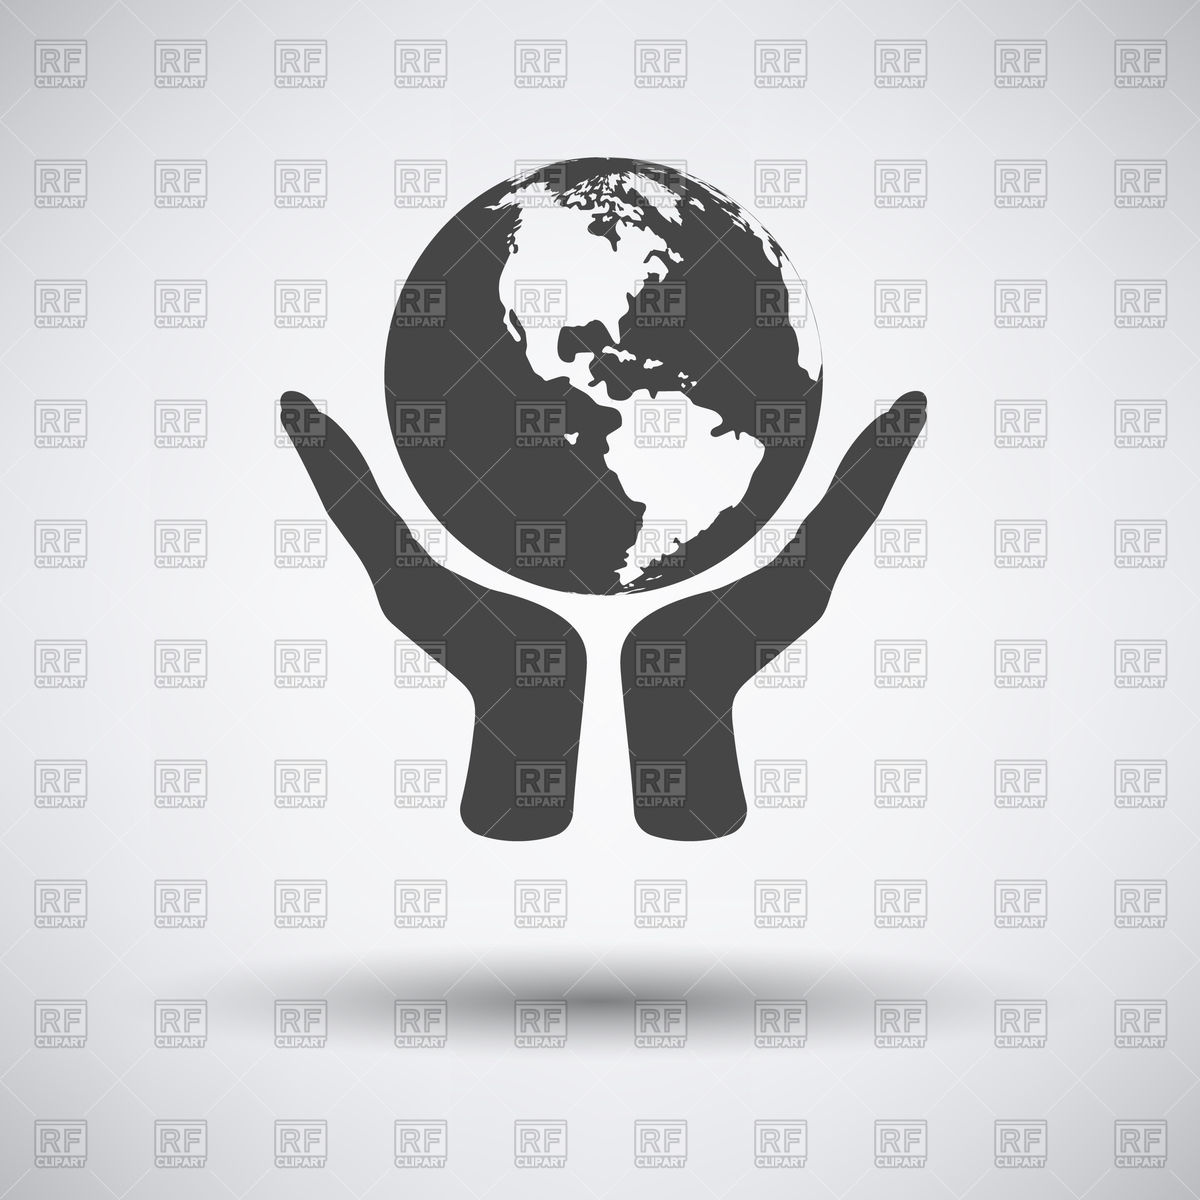 Hands hold world globe Vector Image #114483.